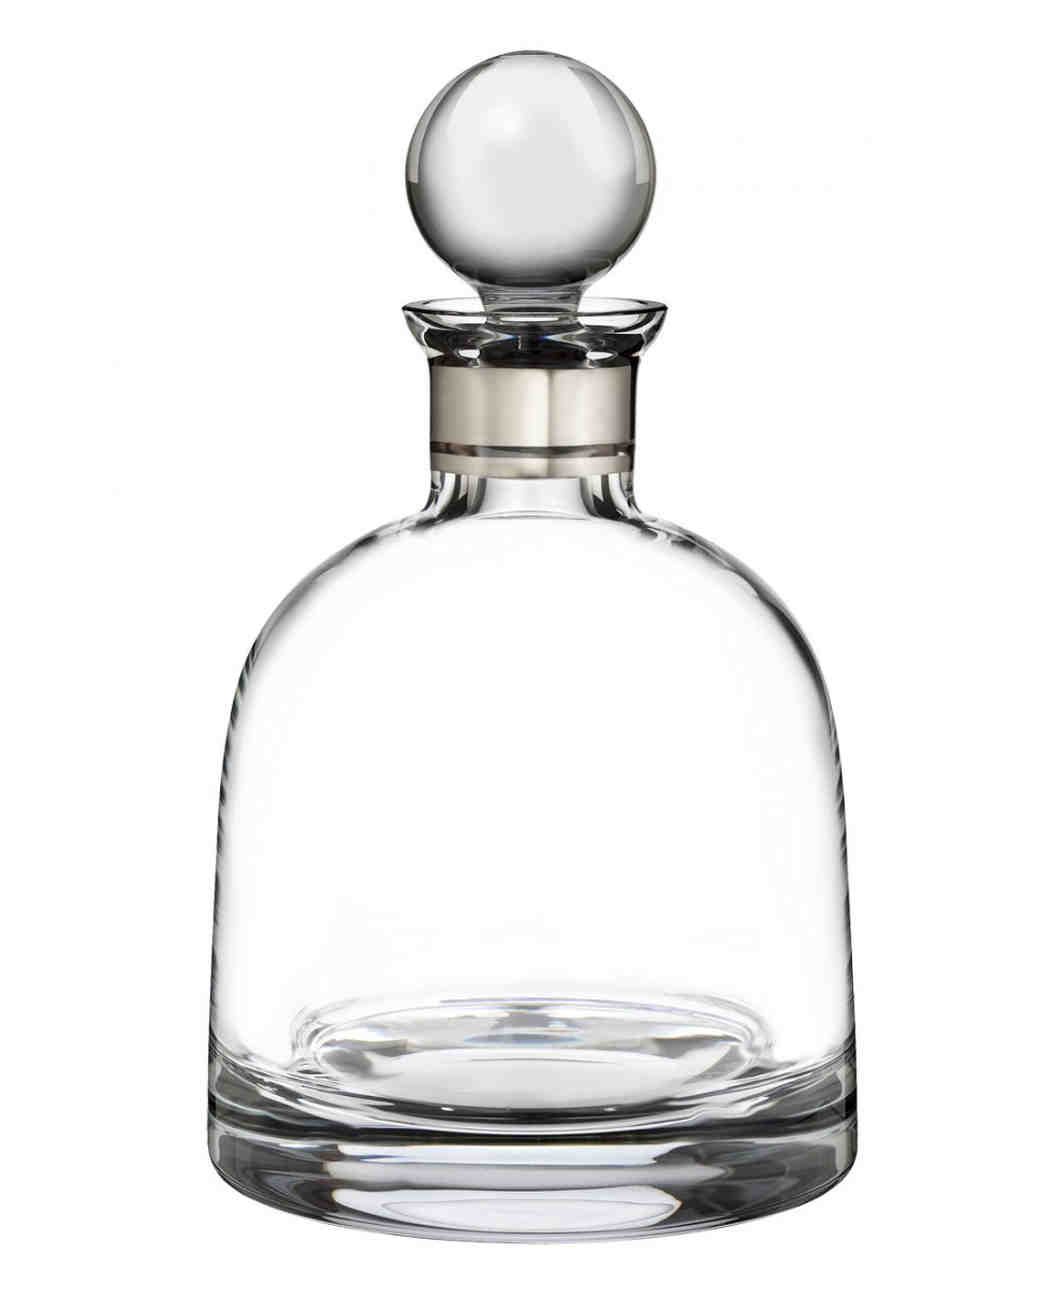 fathers-gift-guide-food-waterford-decanter-0515.jpg